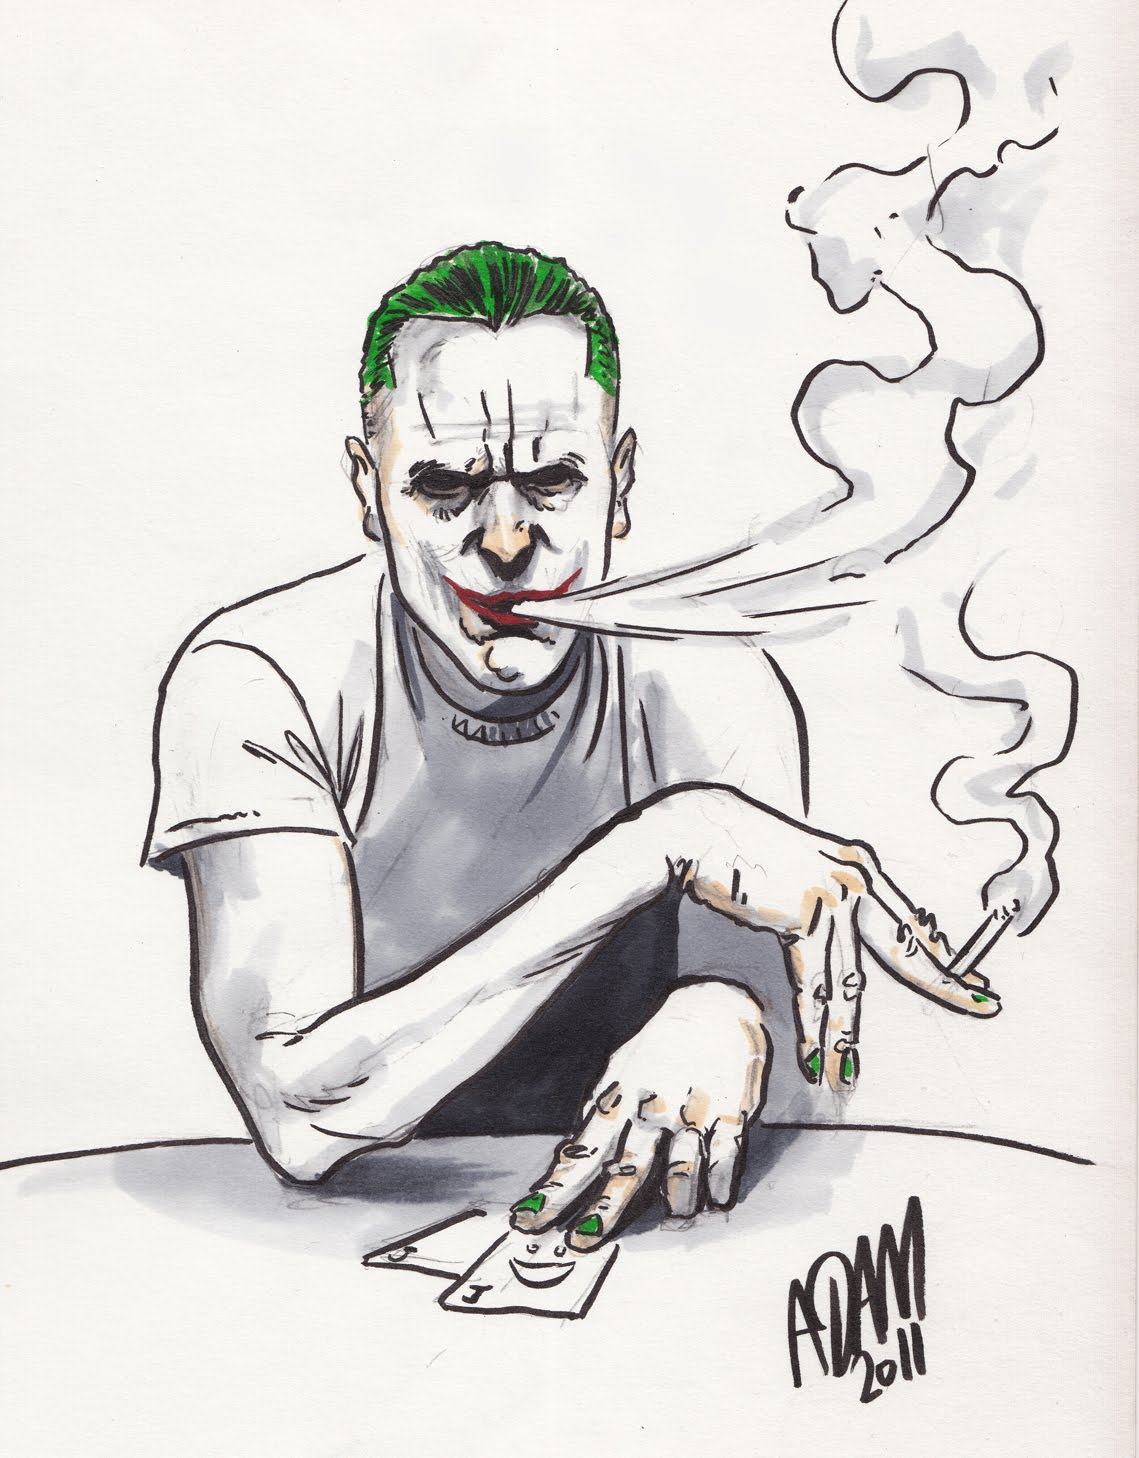 cartoon joker drawing at getdrawings | free for personal use